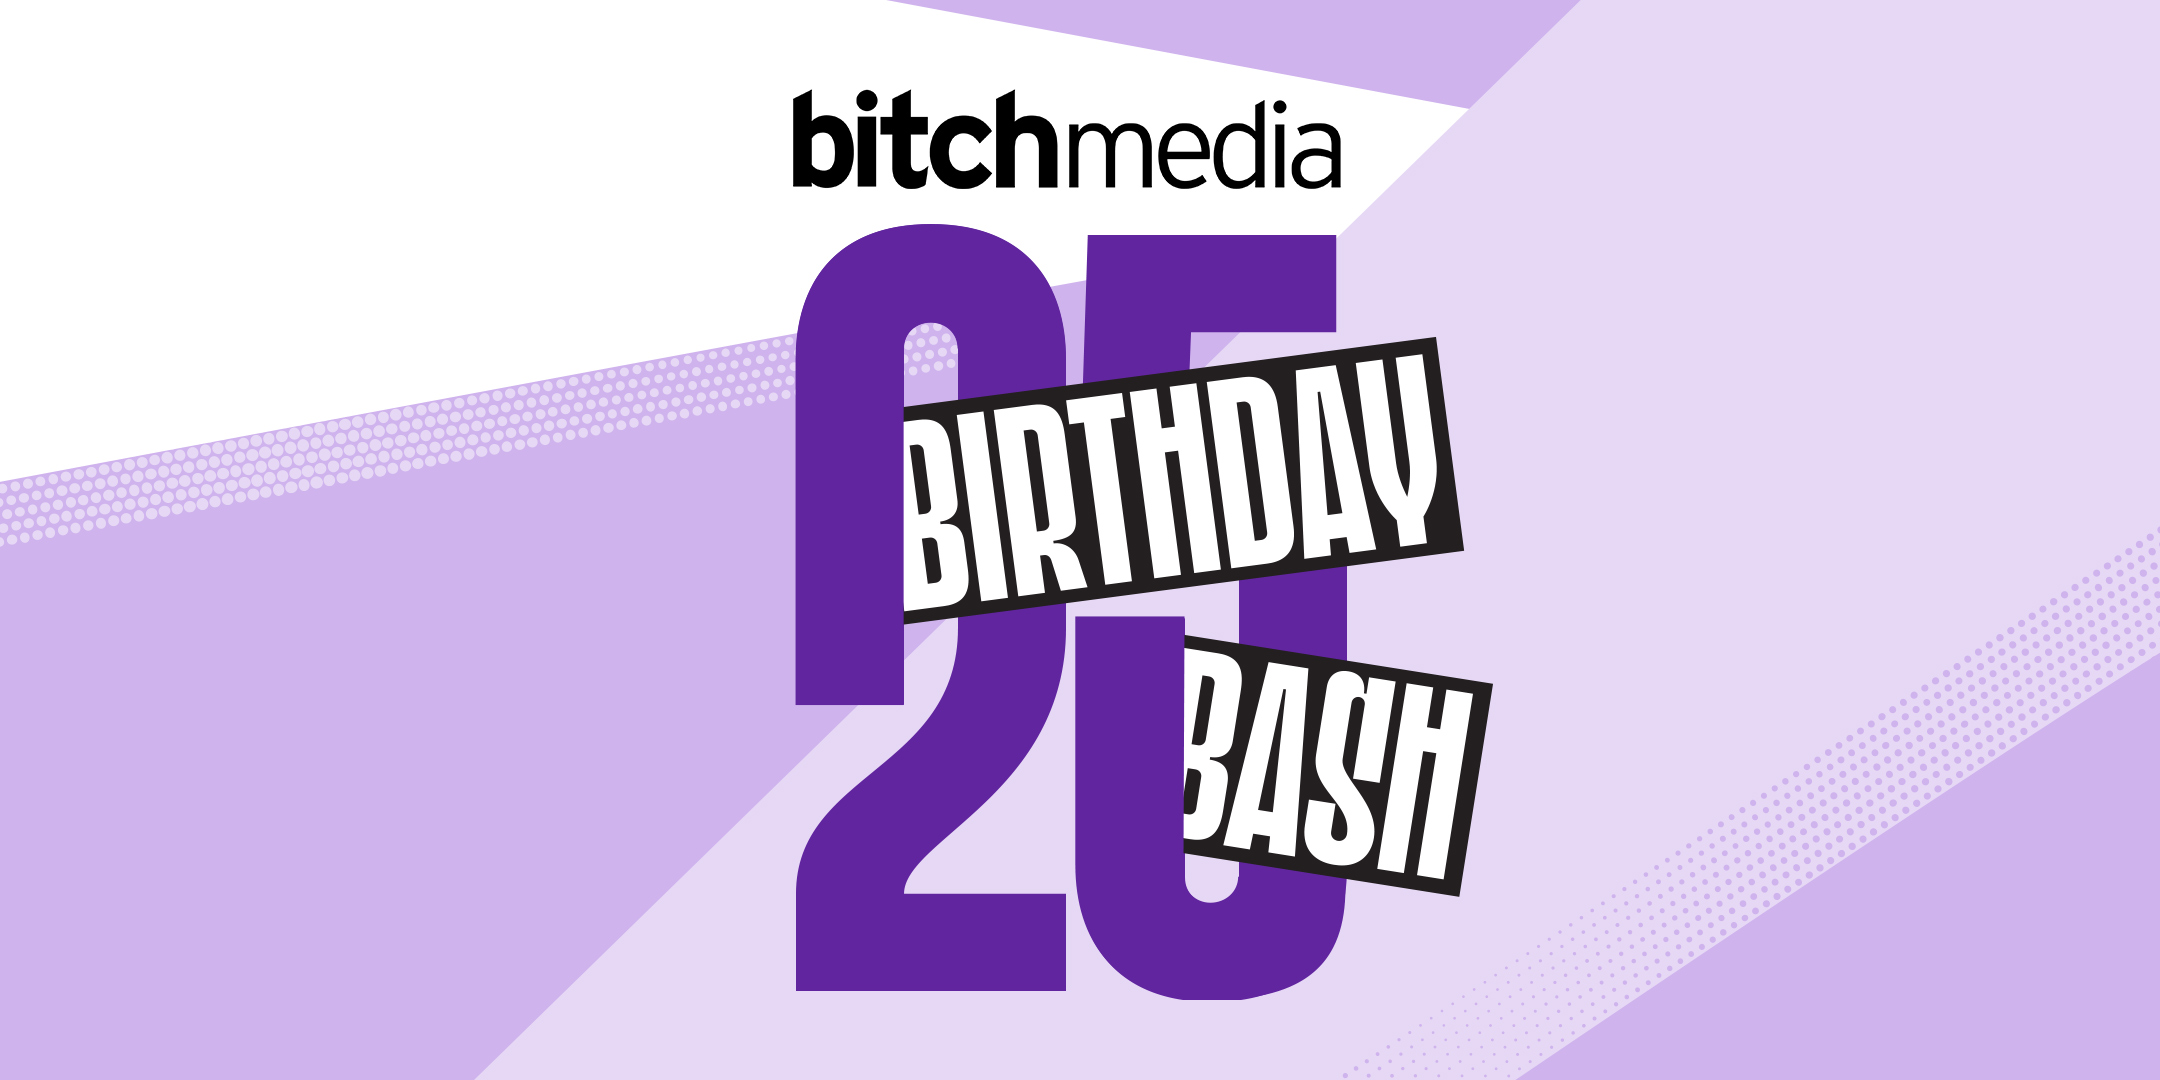 A large image that reads Bitch Media 25 Birthday Bash in purple, black and white, with geometric figures in the background.